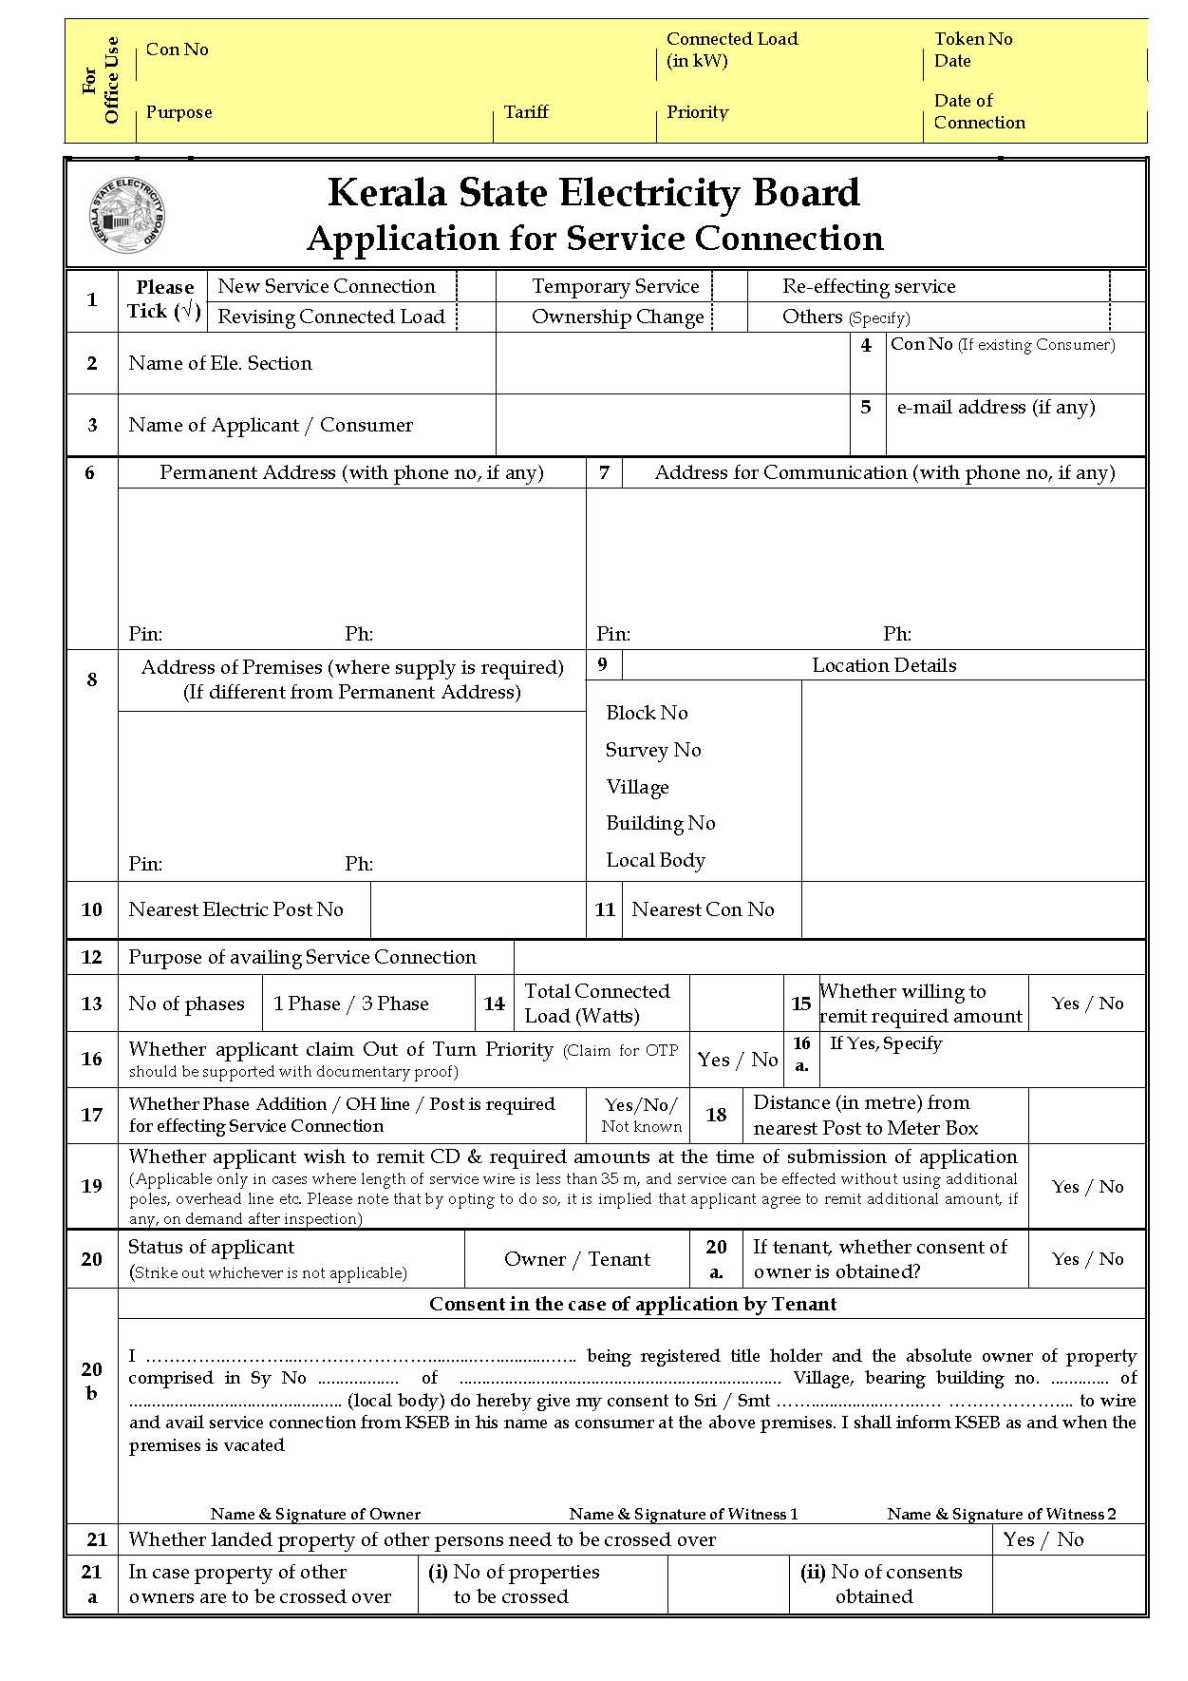 kseb service connection application form 2017 2018 student forum kseb service connection application form